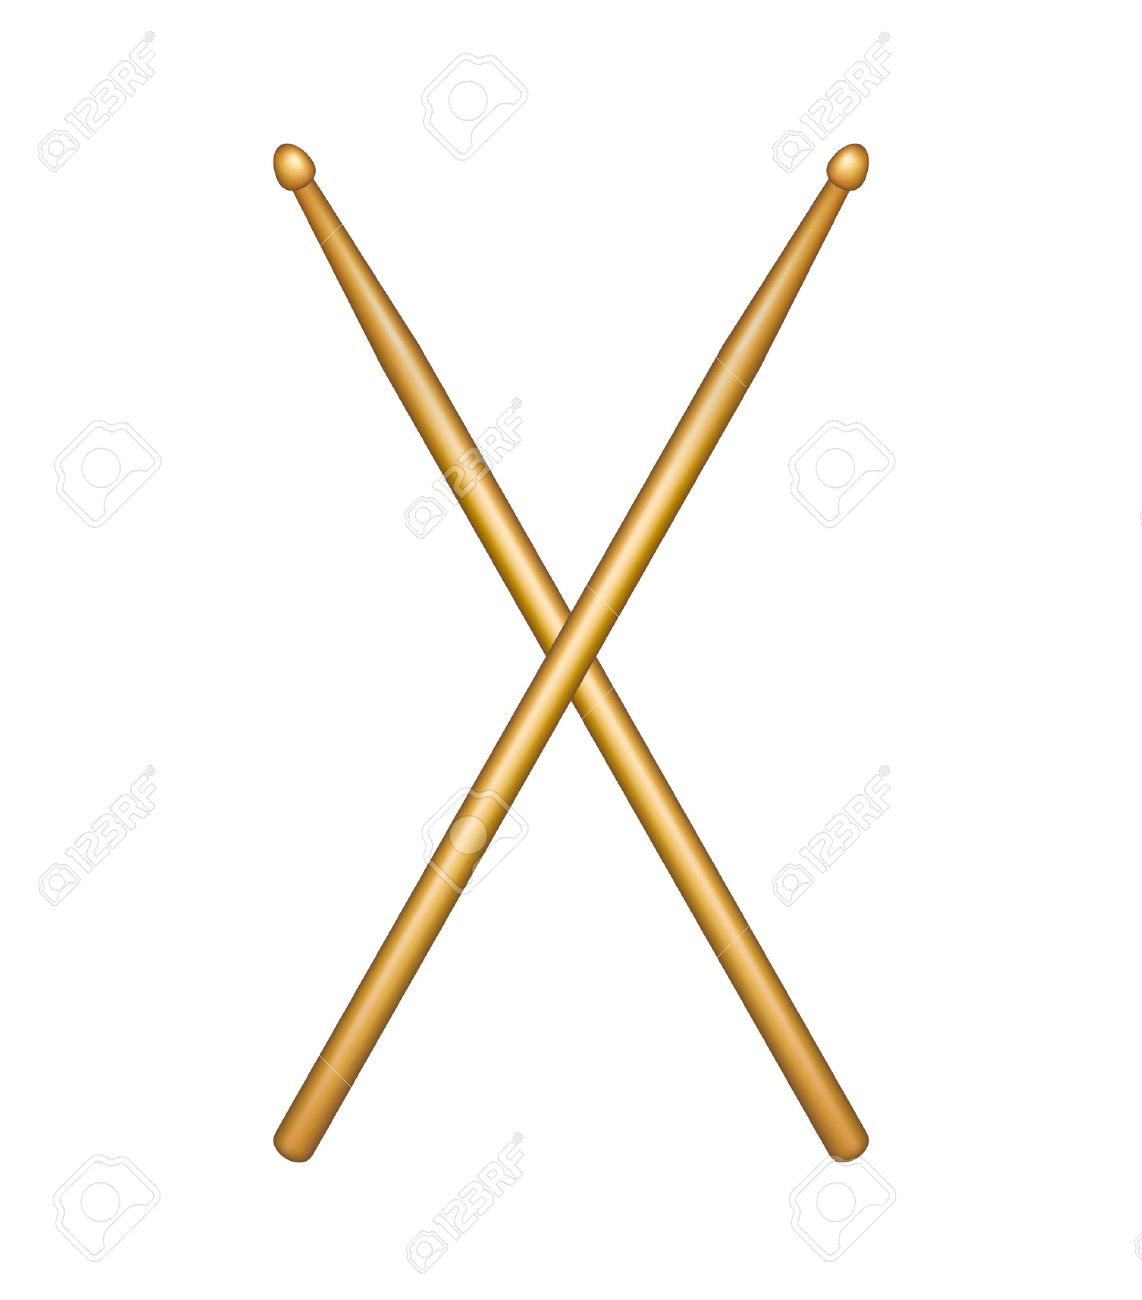 Crossed Pair Of Wooden Drumsticks Stock -Crossed pair of wooden drumsticks Stock Vector - 26574413-1